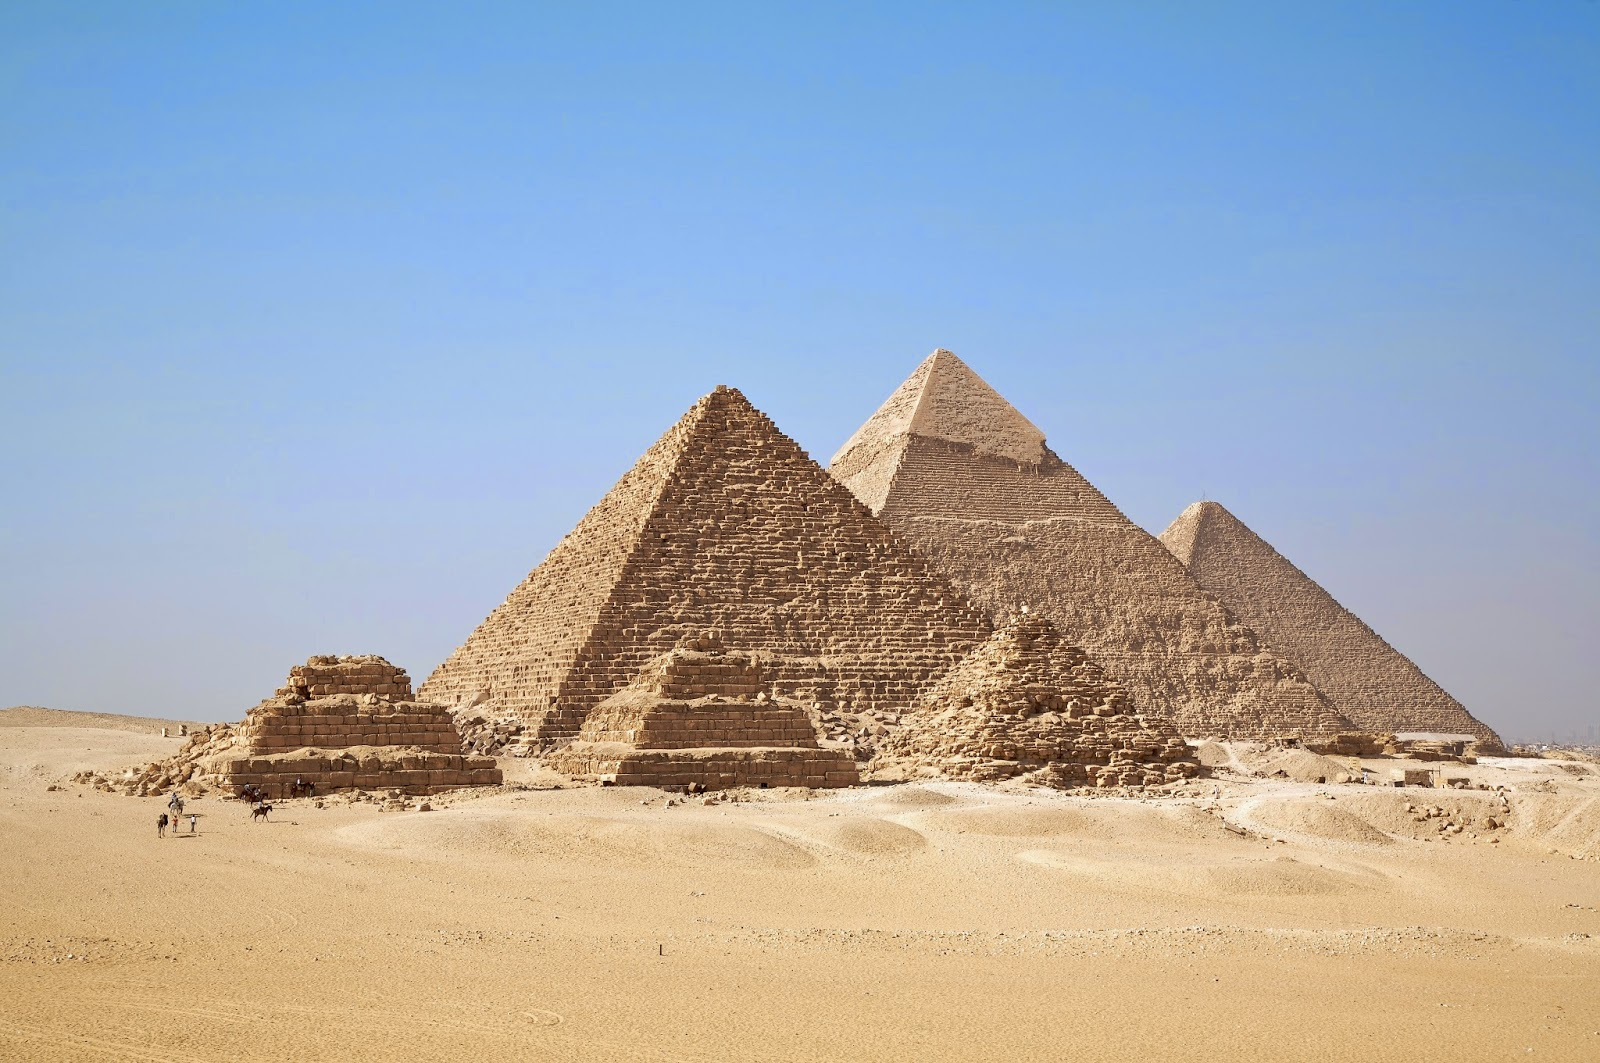 http://www.google.com/intl/es/maps/about/behind-the-scenes/streetview/treks/pyramids-of-giza/